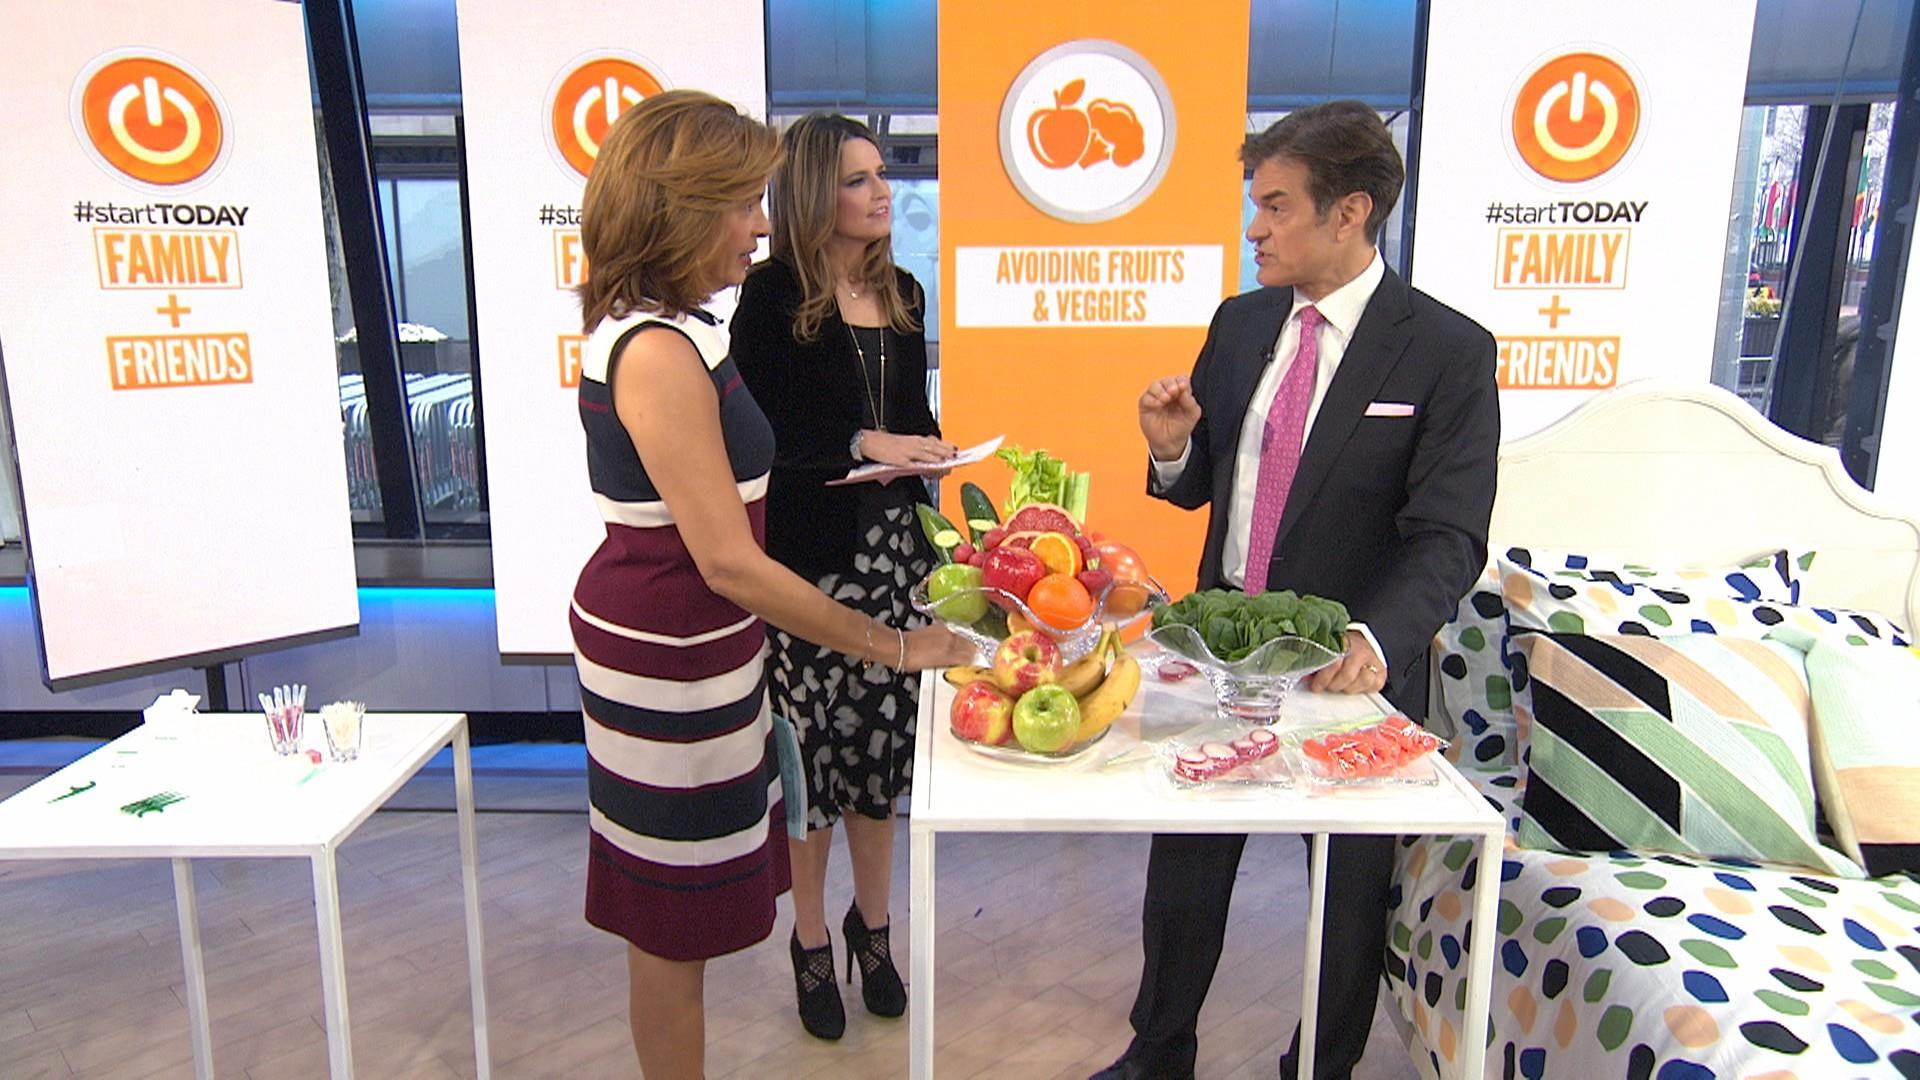 Dr  Oz reveals 5 health mistakes – and how to fix them